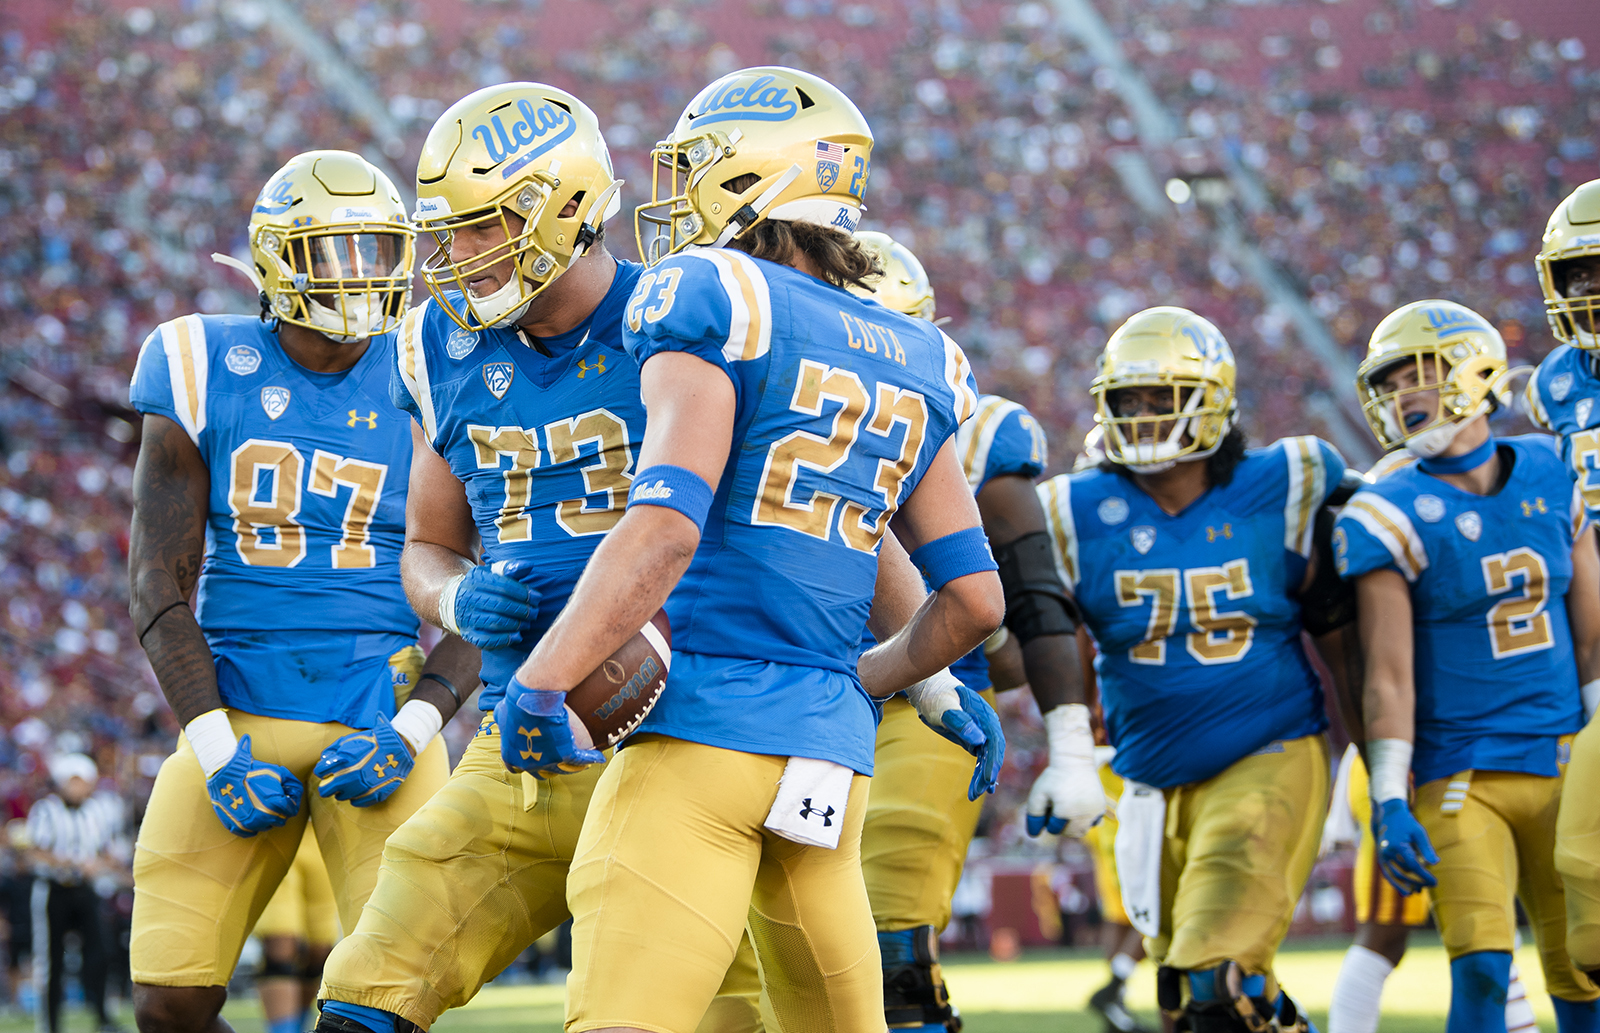 Under Armour looking to end 15-year, $280M deal with UCLA